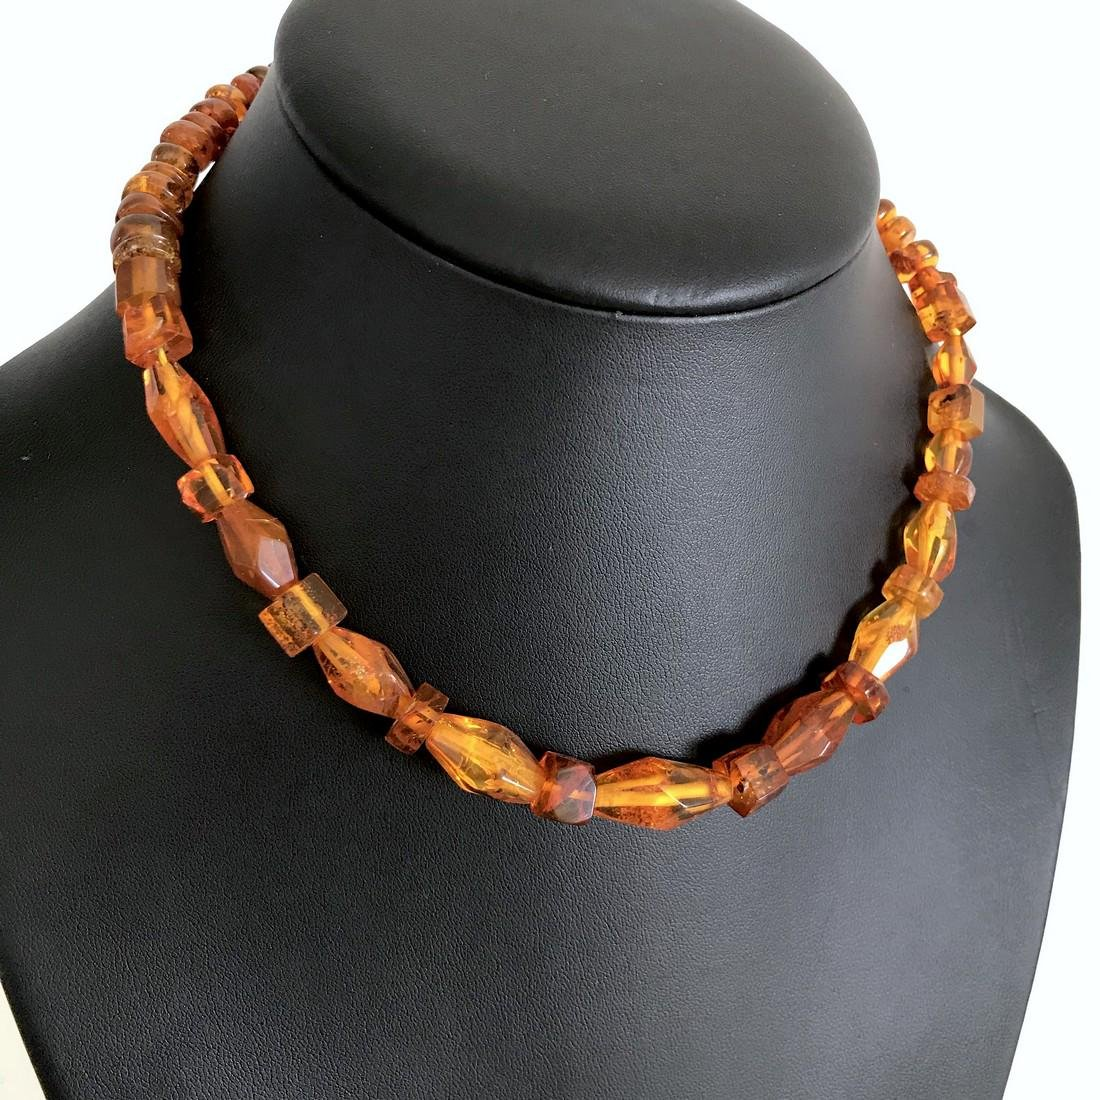 Vintage Baltic Amber carved beads necklace, 46 cm